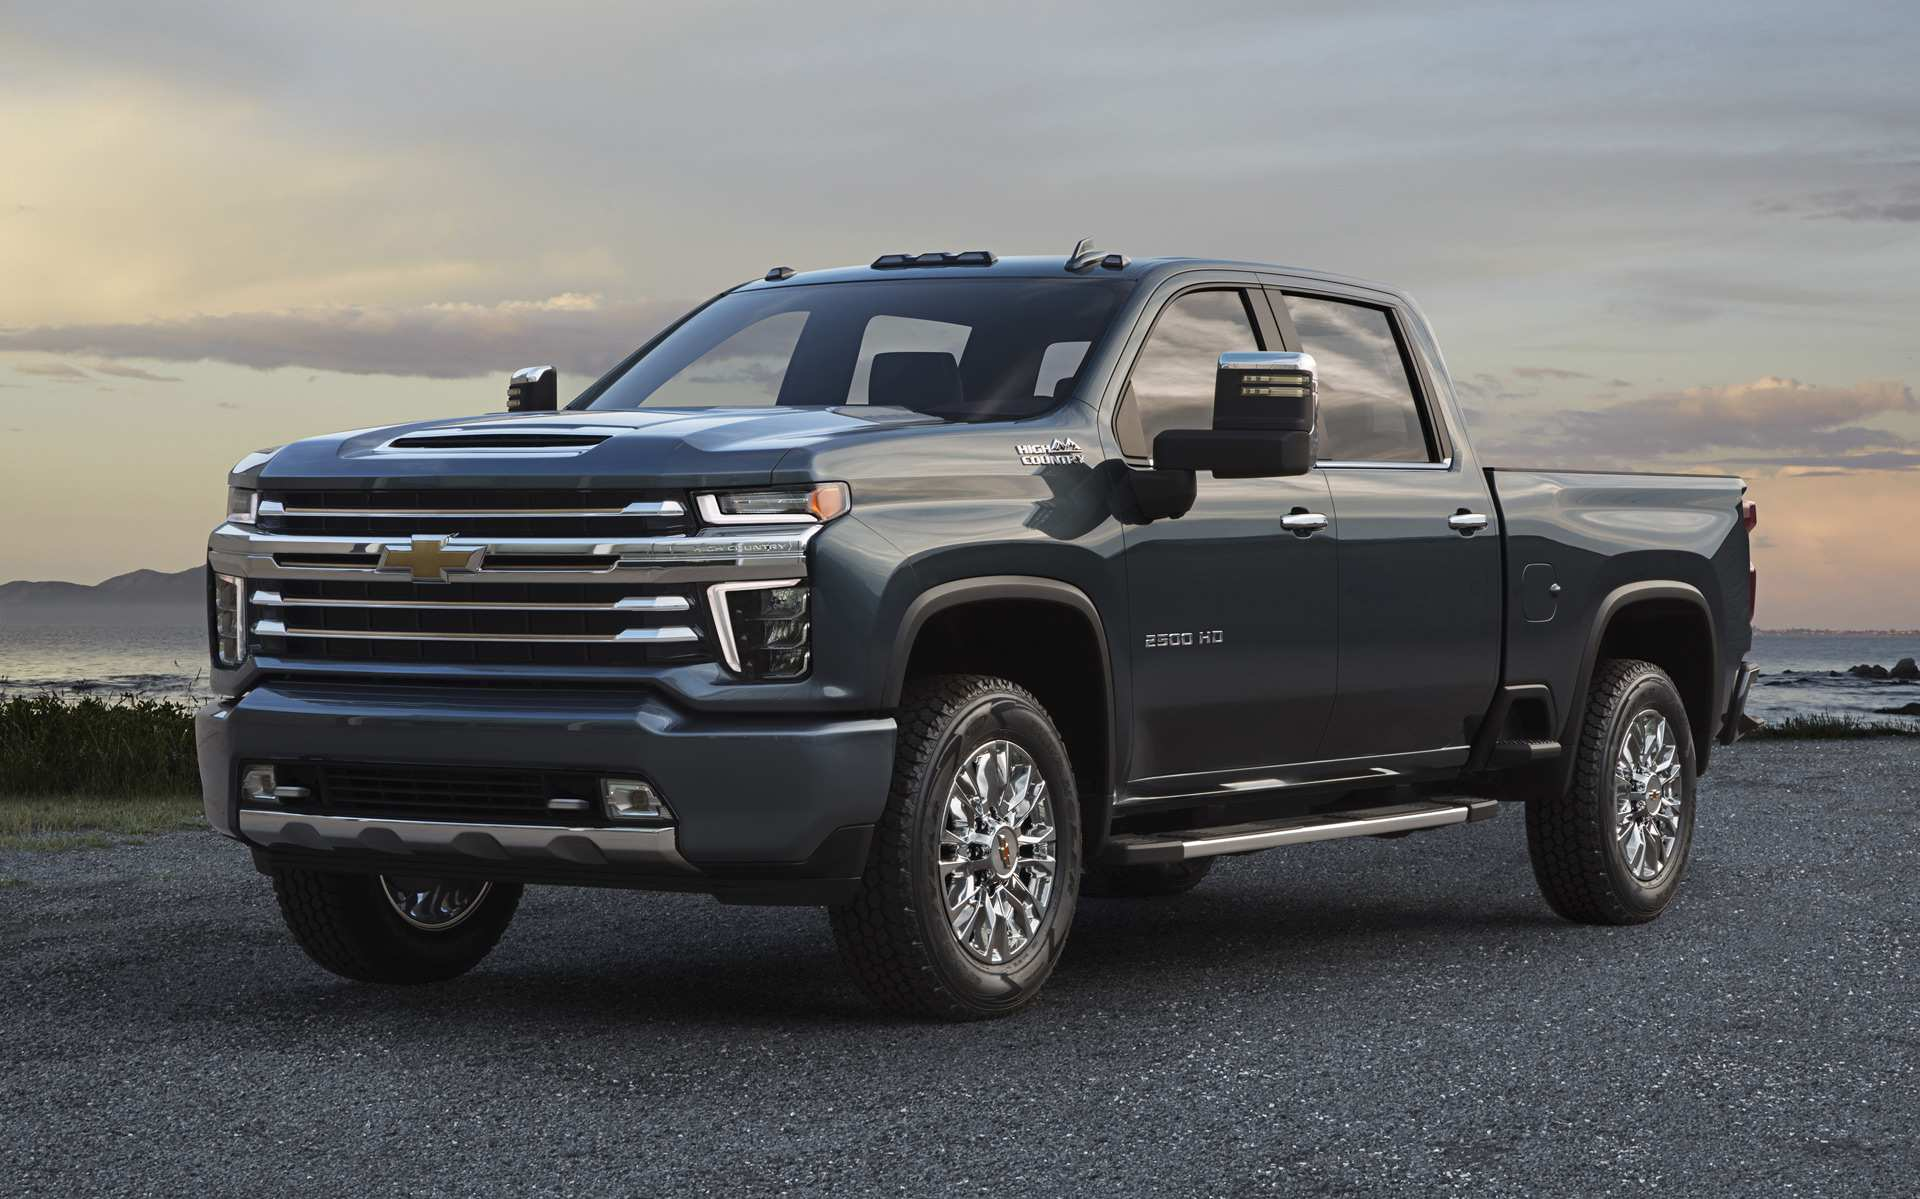 63 All New Chevrolet Heavy Duty 2020 Redesign